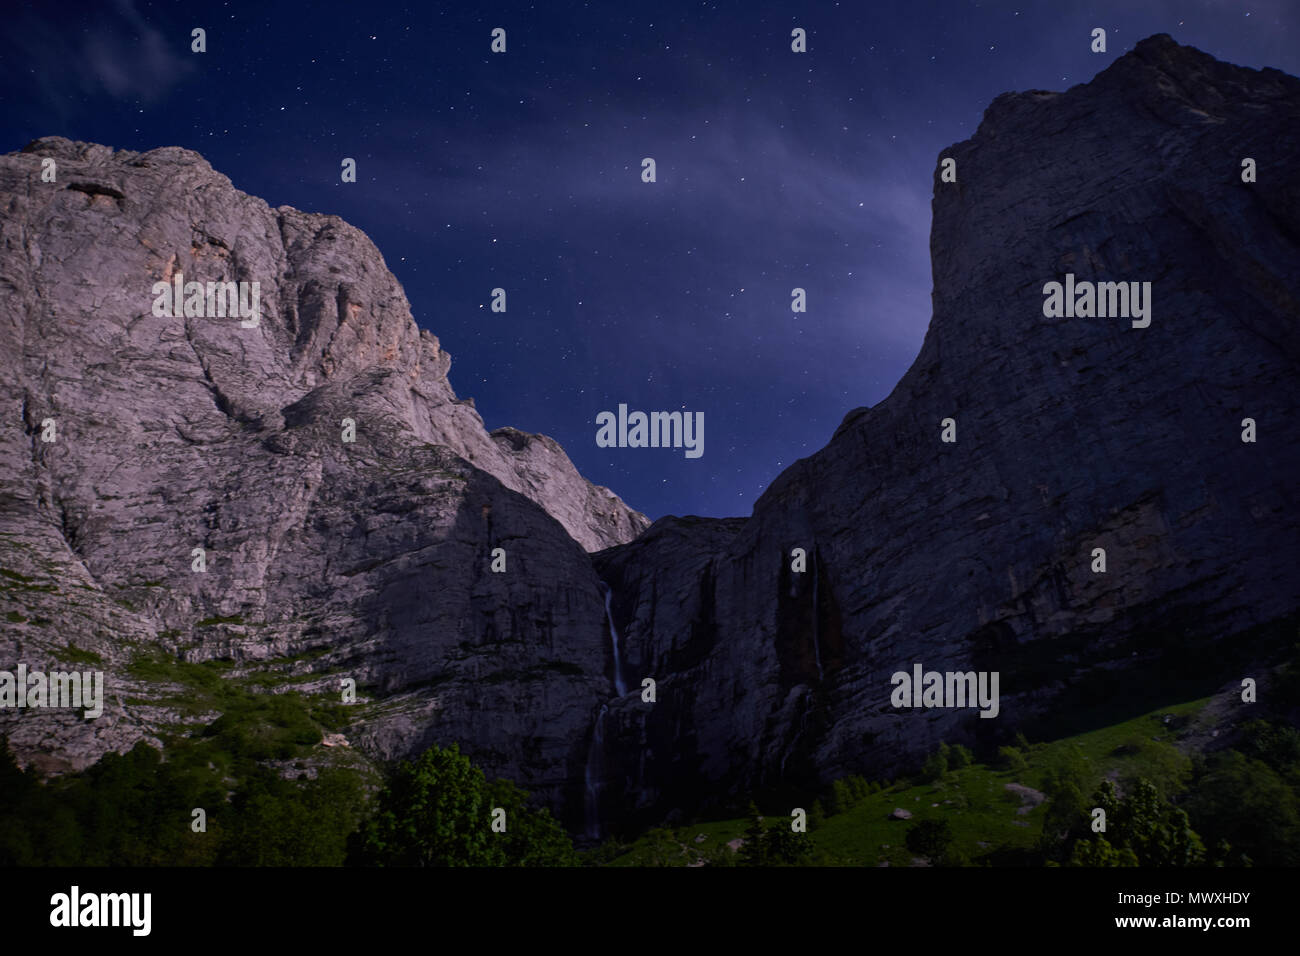 Starry sky above the mountain peaks - Stock Image